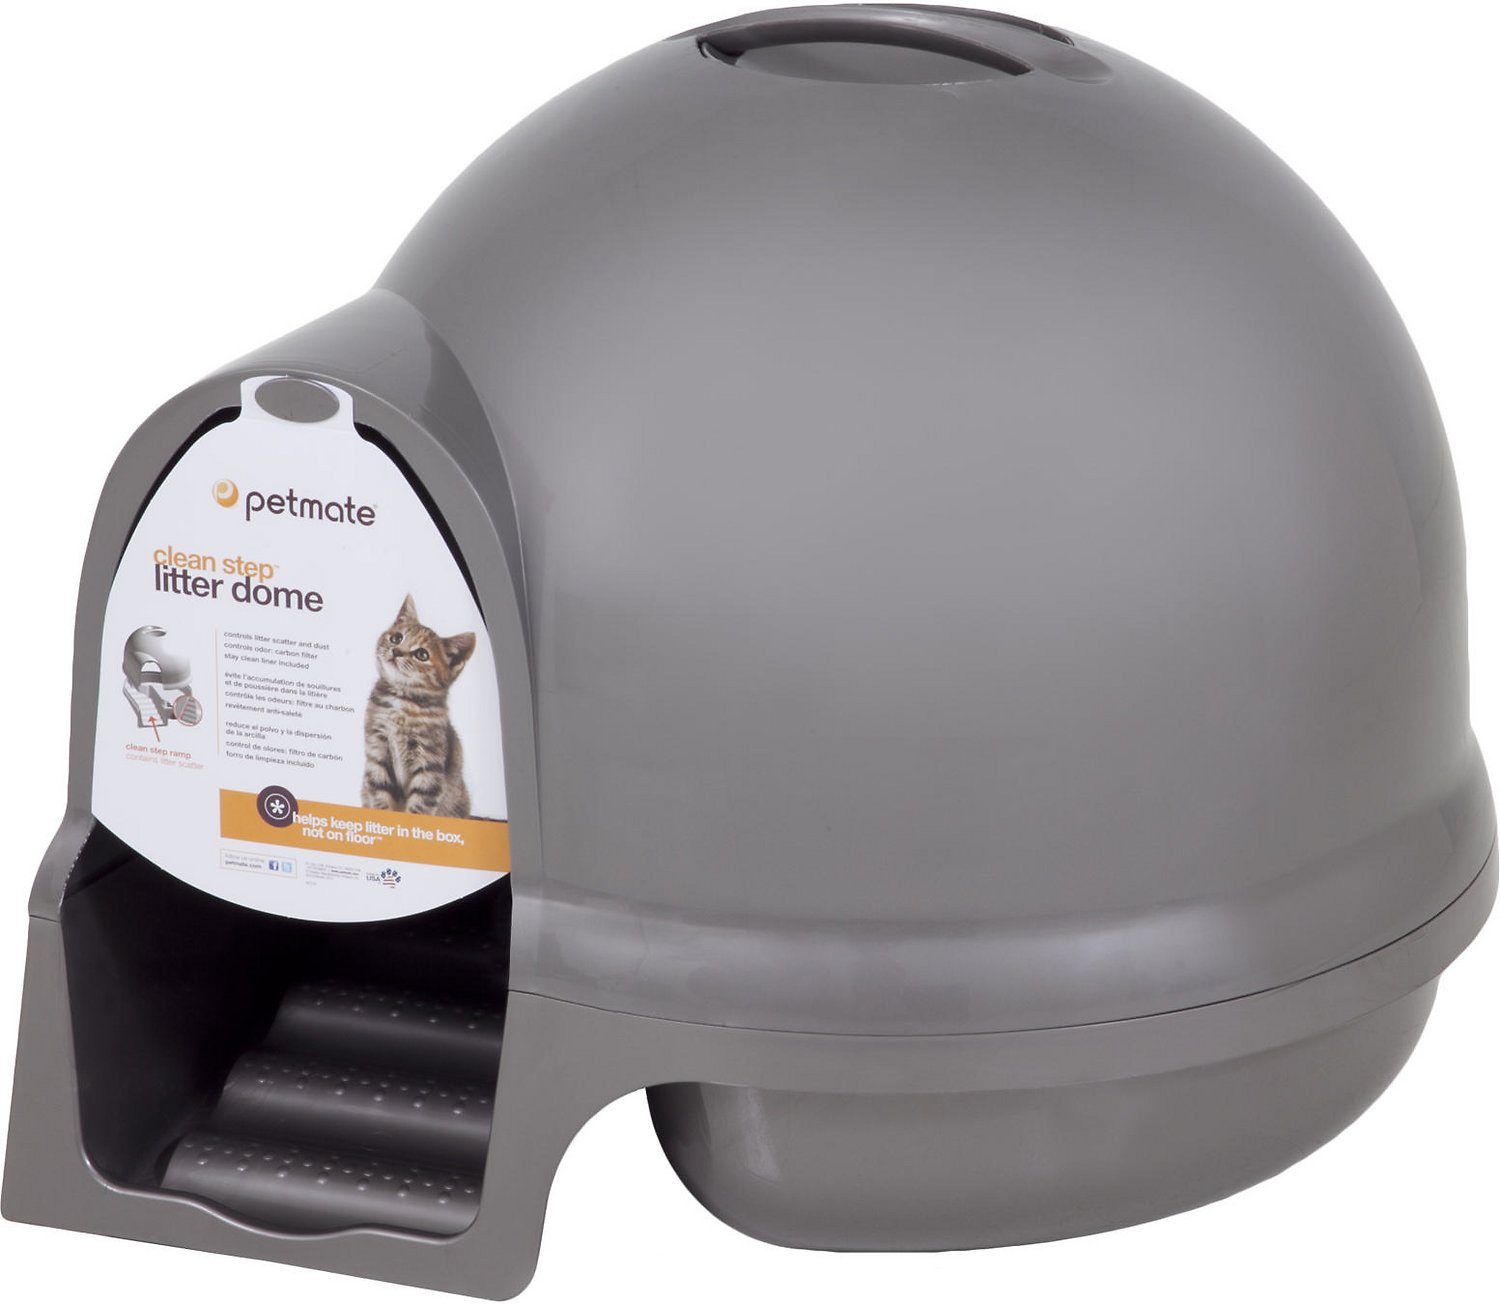 booda dome cleanstep litter box - Litter Boxes